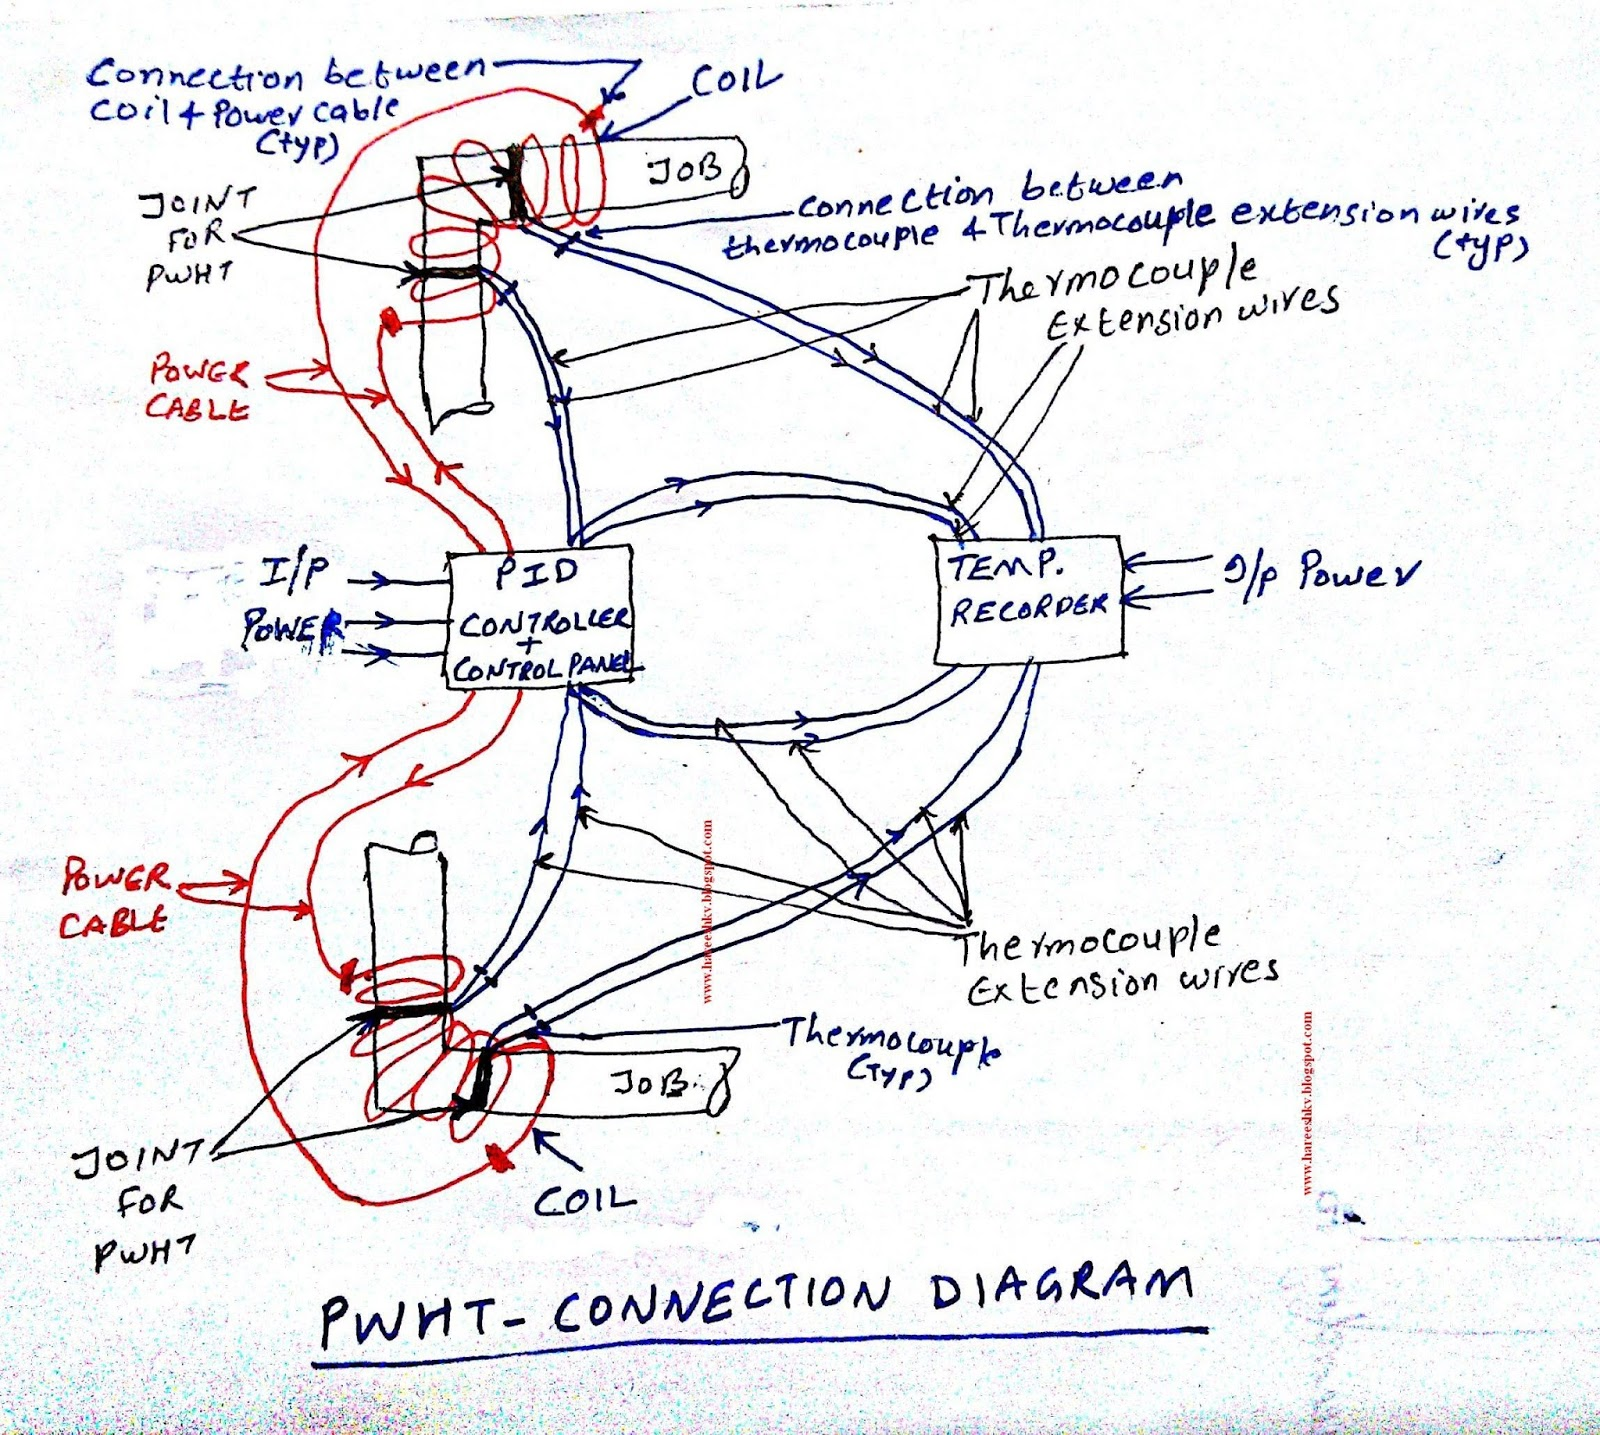 Pwht Part 3 Equipment Connection Mechanical Construction Circuit Diagram Elcb Below Is The Of Equipments